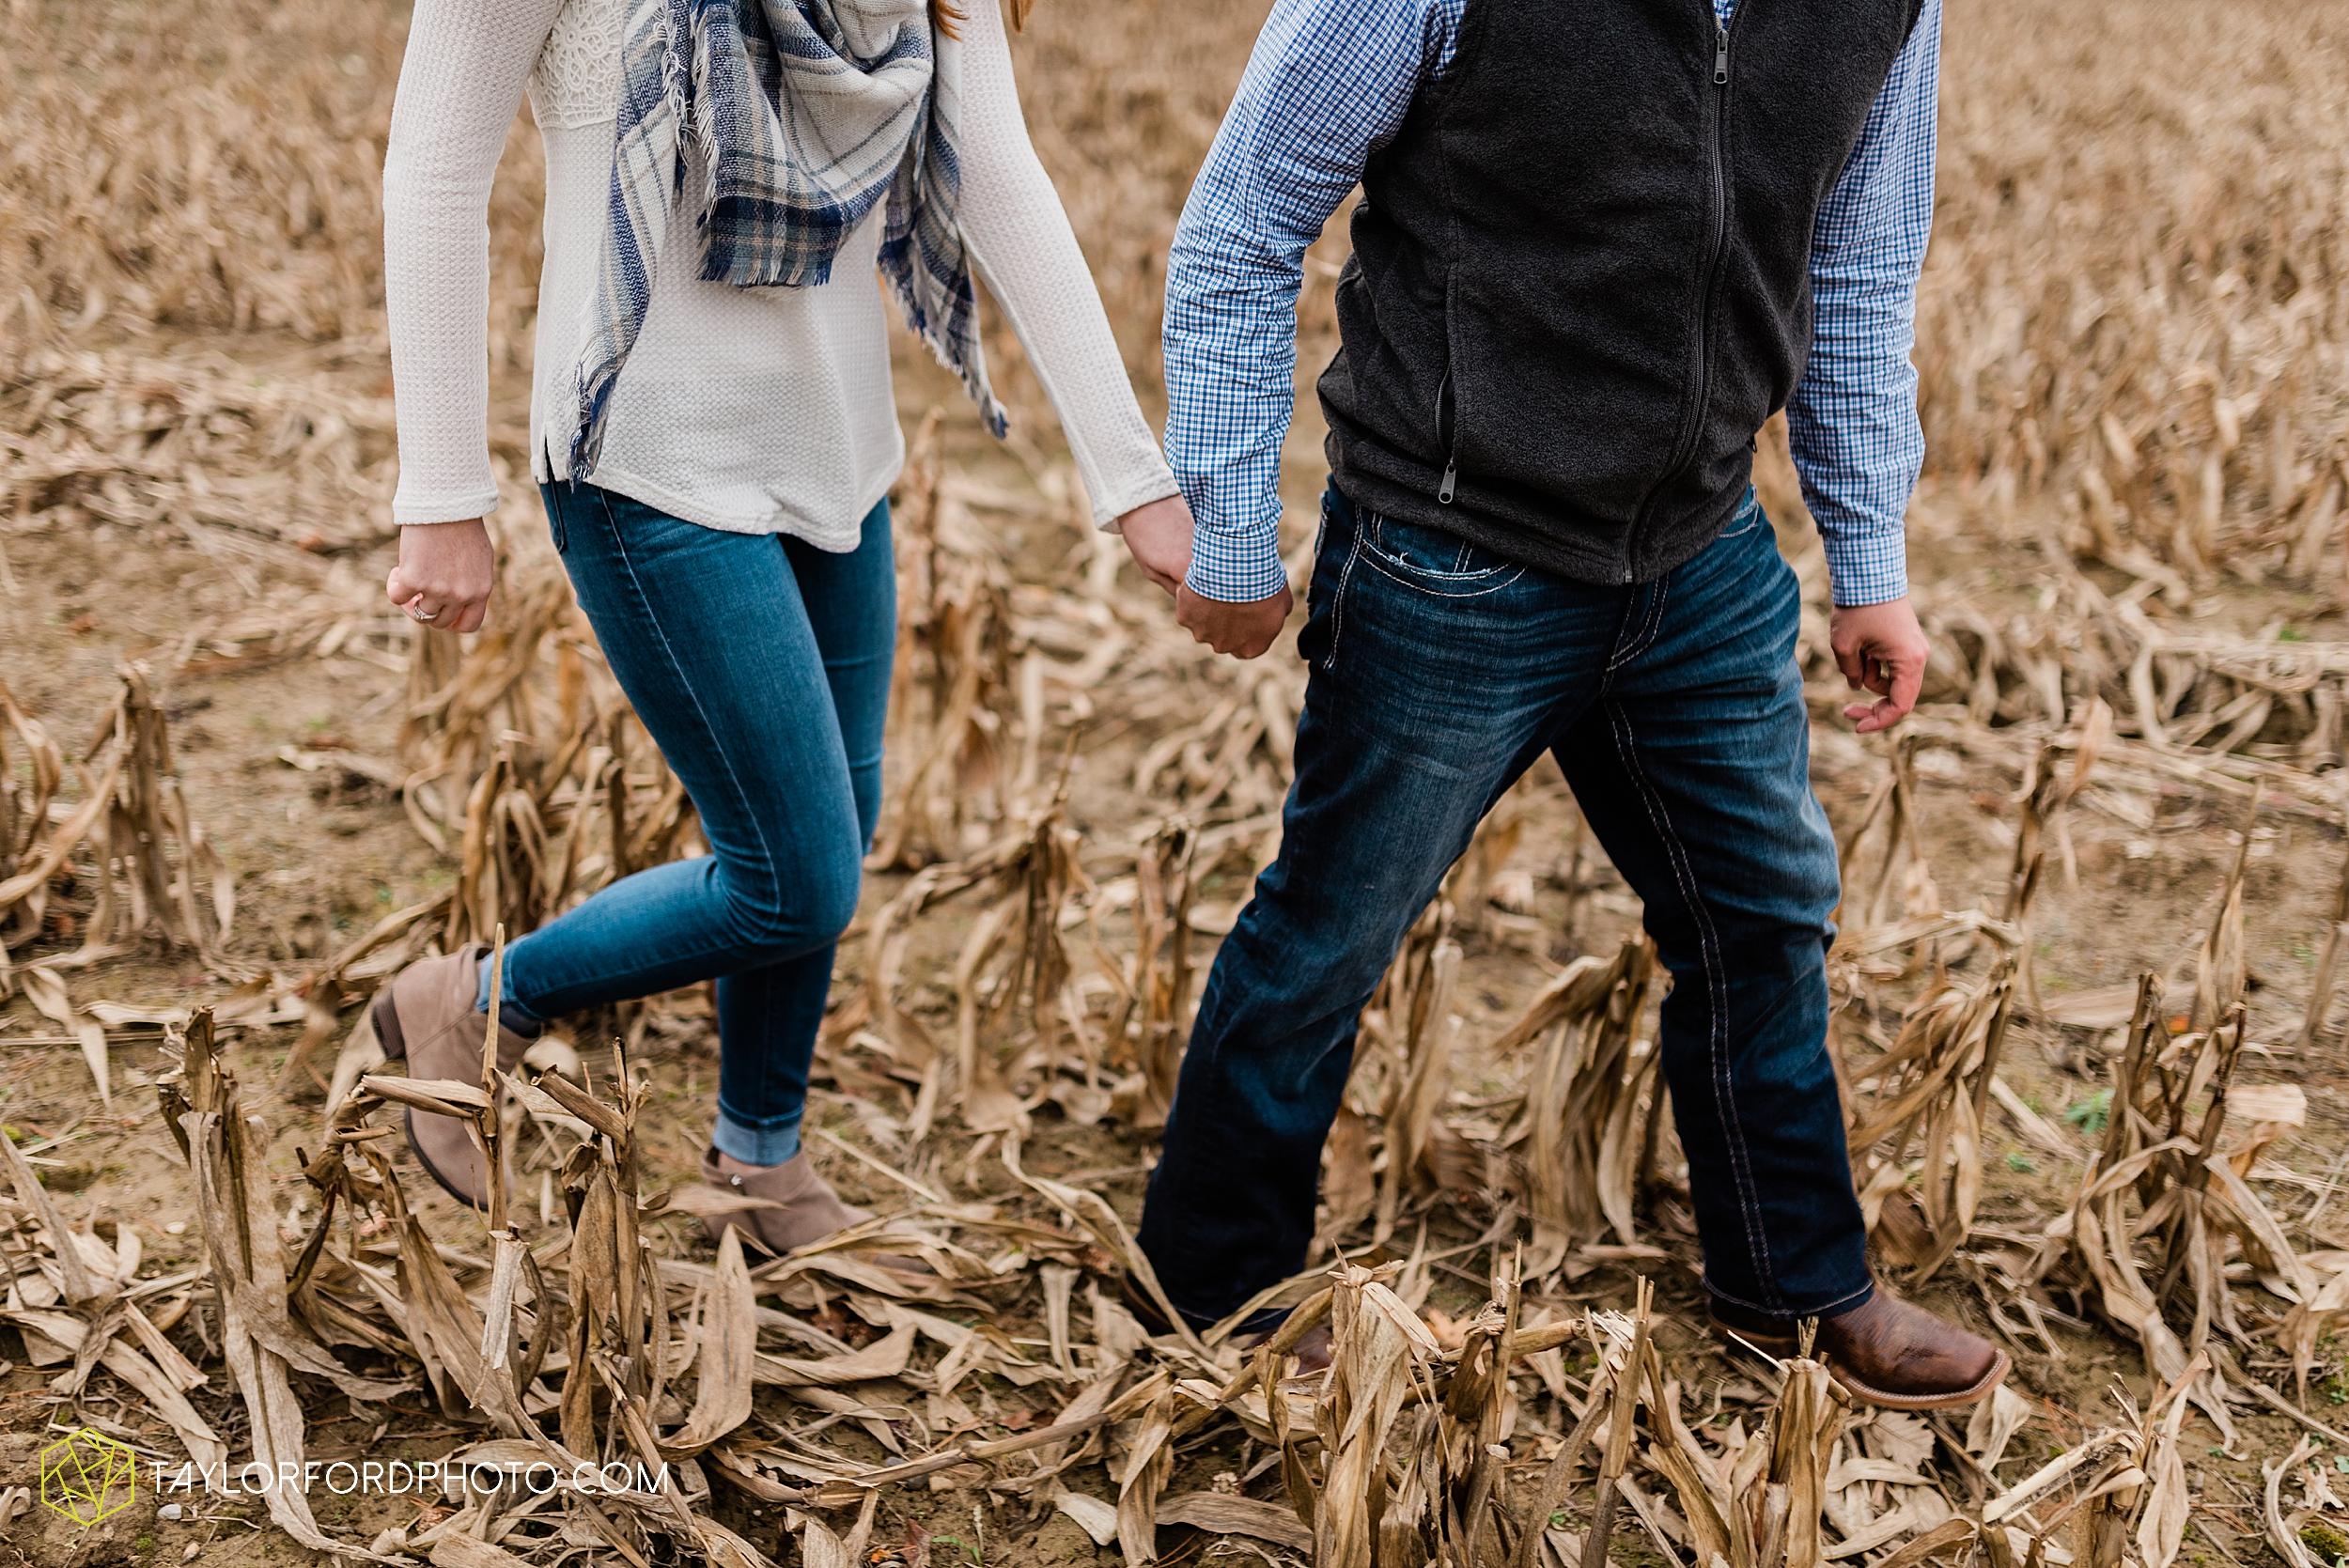 becca-connor-bonnell-fort-wayne-indiana-couples-mini-session-salomon-farm-fall-october-photographer-taylor-ford-photography_1639.jpg